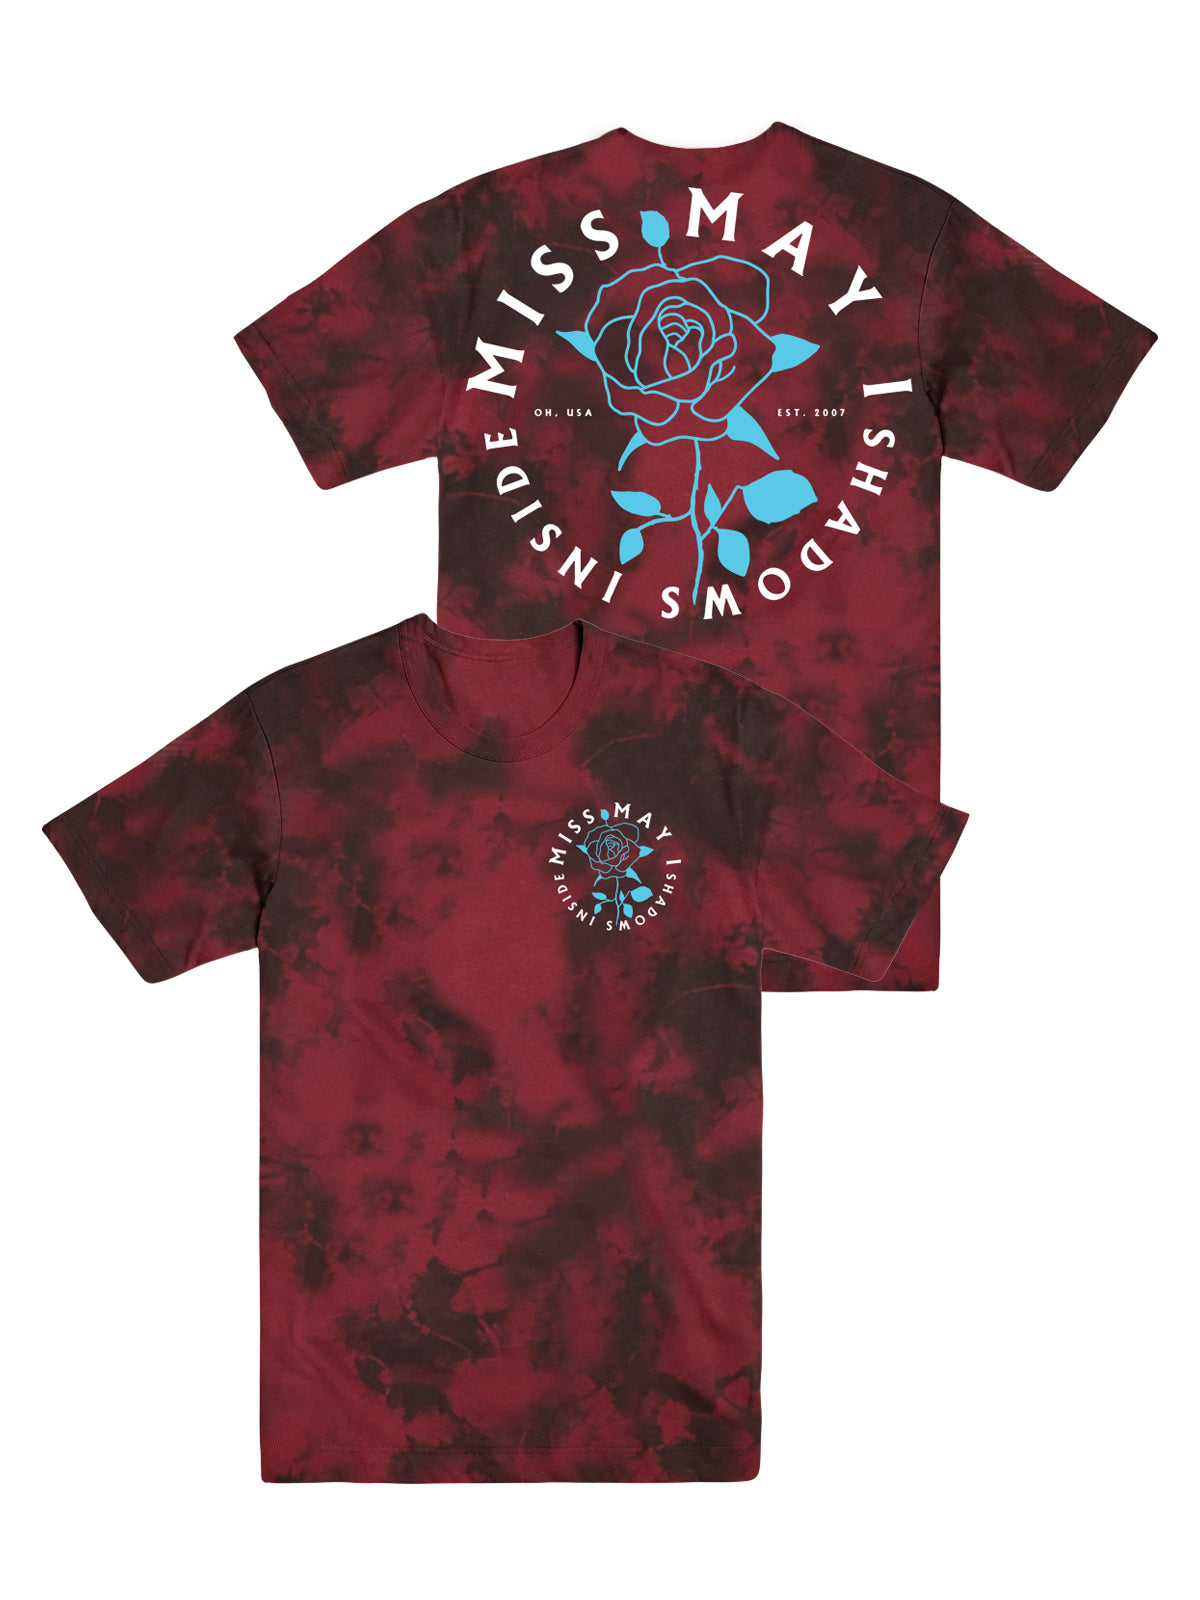 Miss May I - Rose Shirt (Tie Dye) - Merch Limited